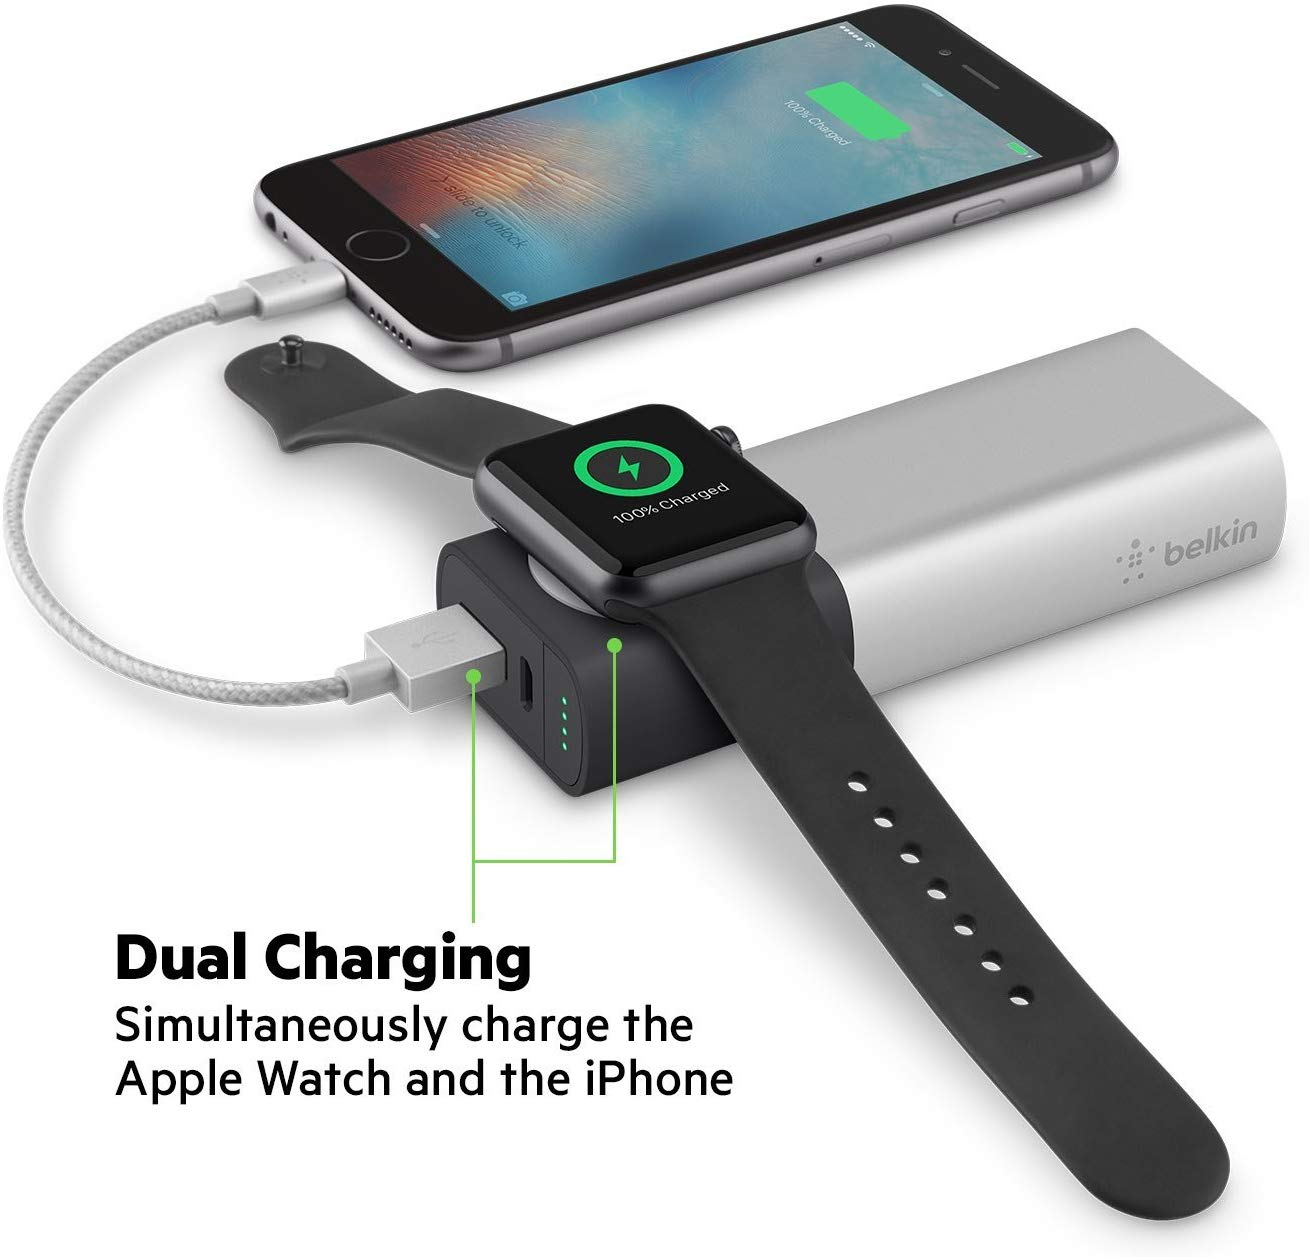 buy Belkin Valet Charger Power Bank black friday deals and offers